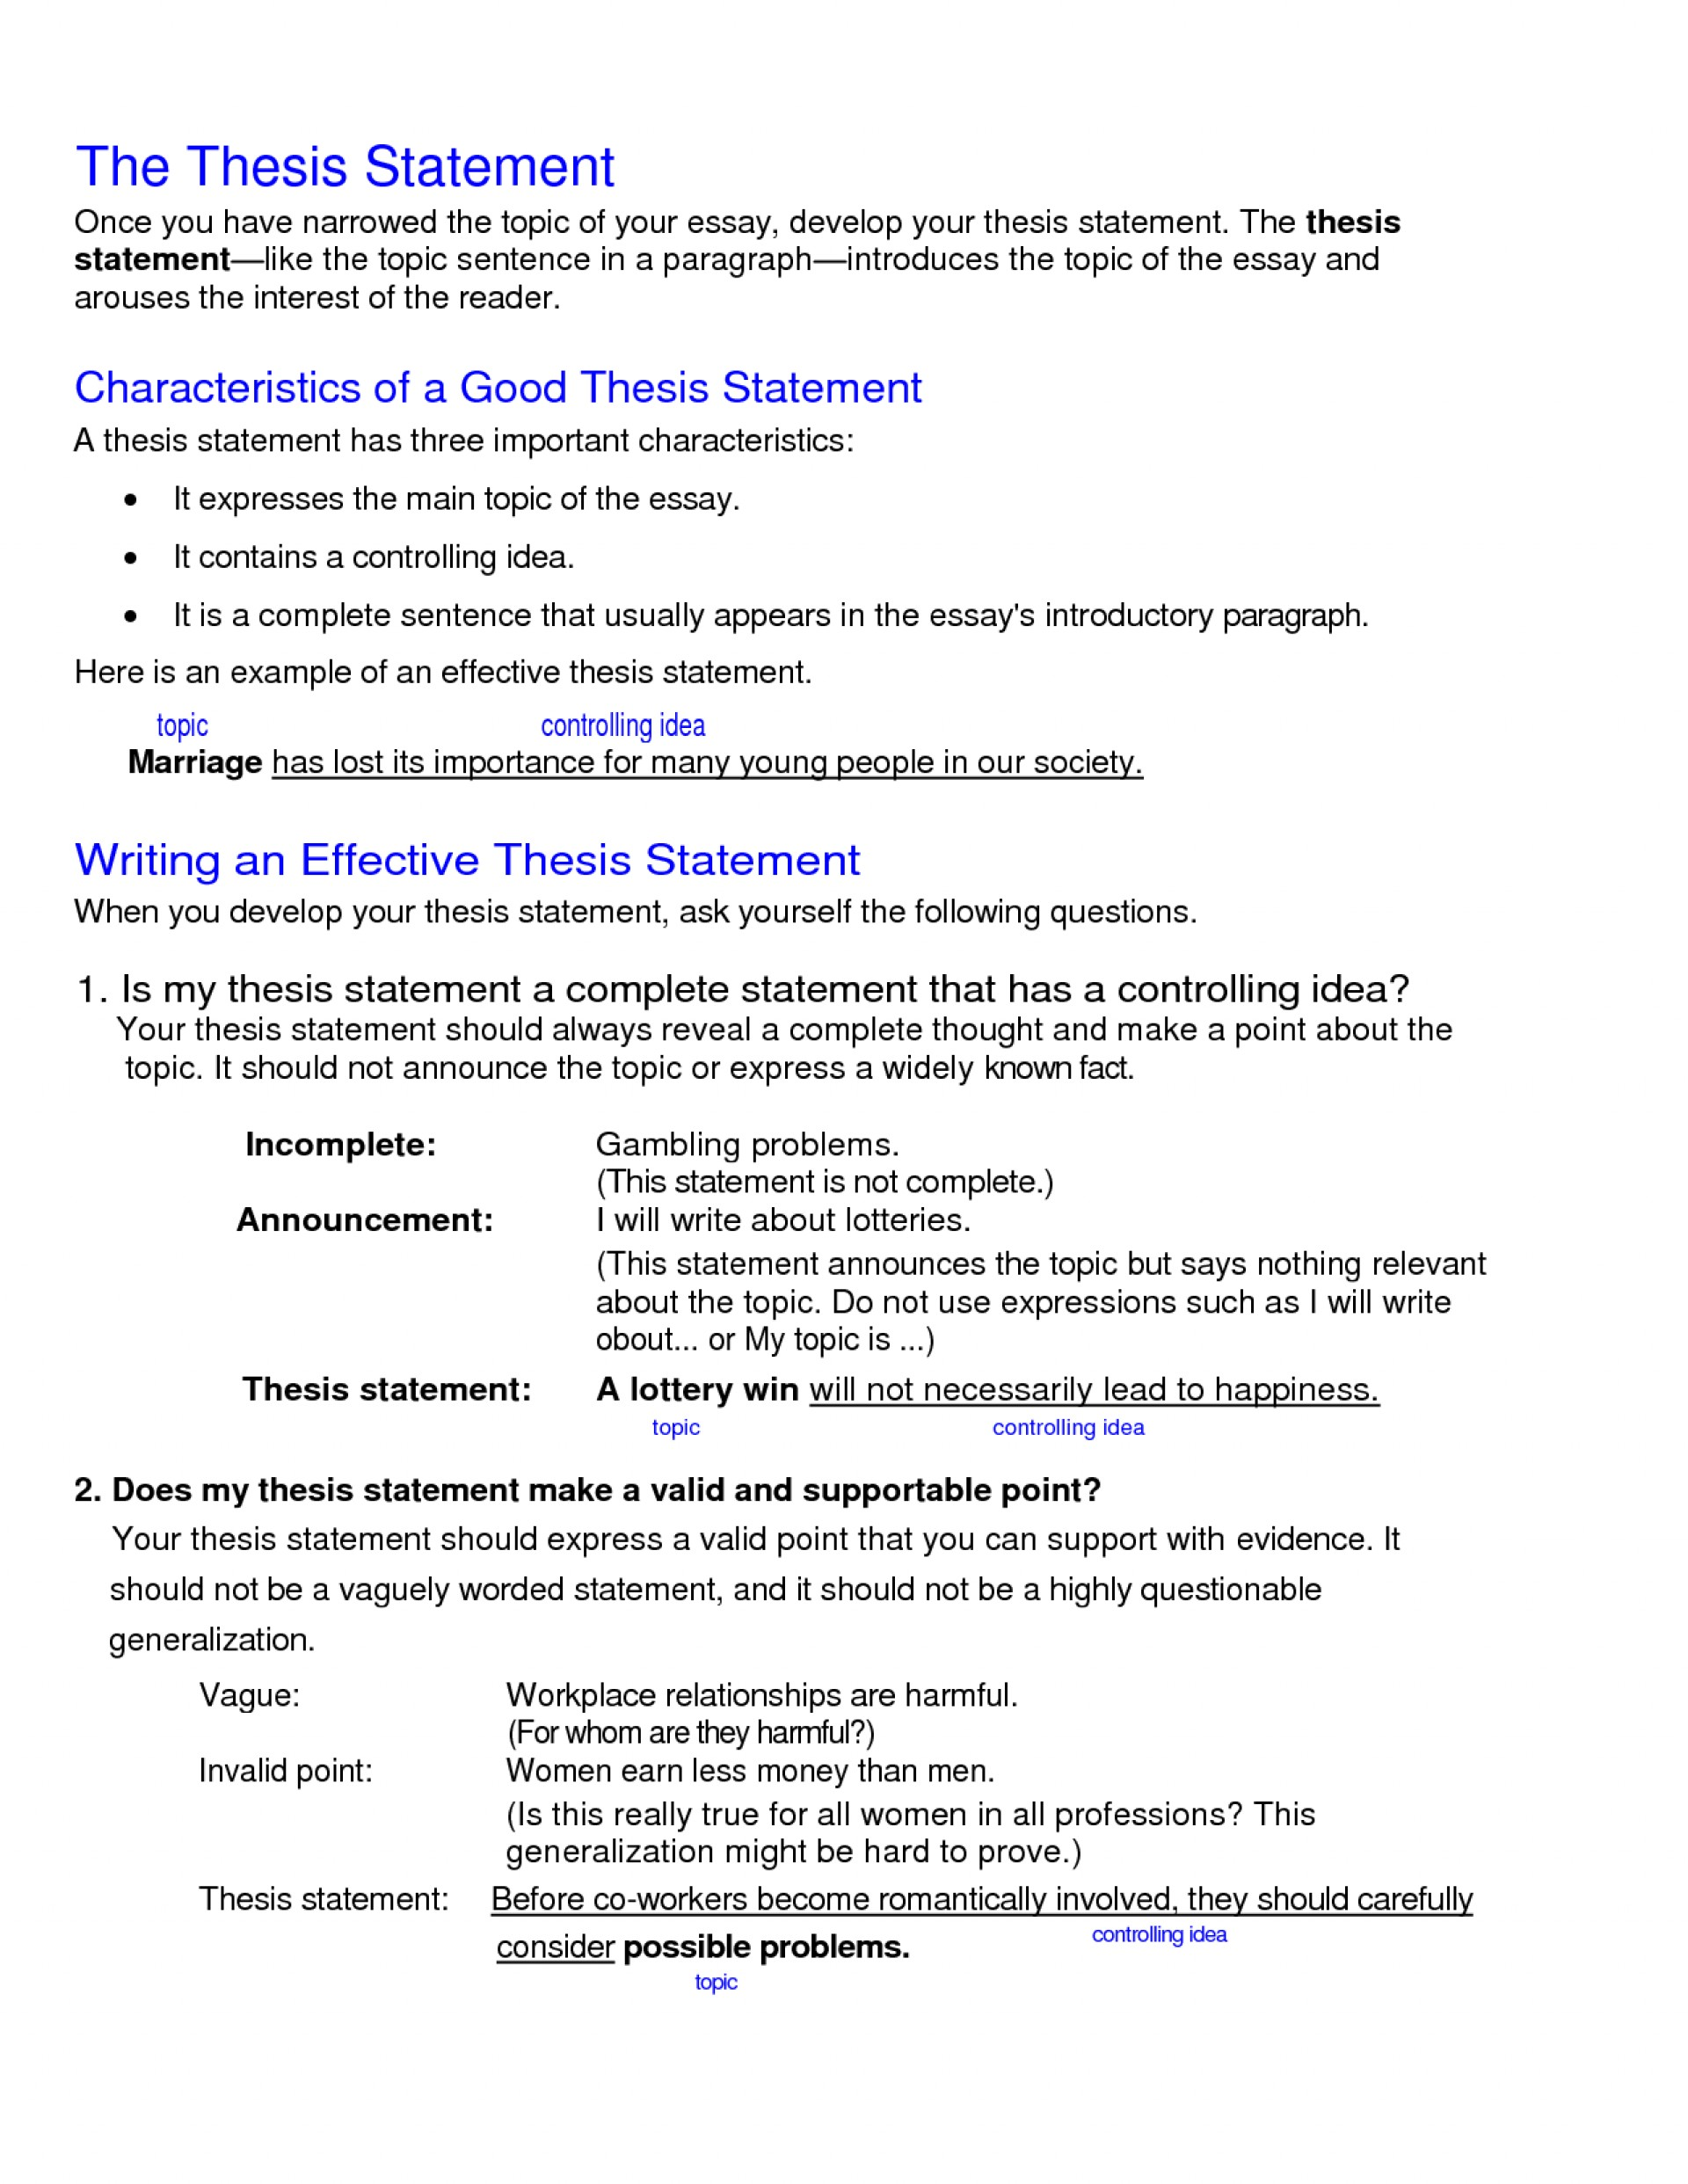 007 An Effective Thesis In Argumentative Essay Must Example Statement Template Frightening I Present Both Sides Of The Issue Brainly 1920